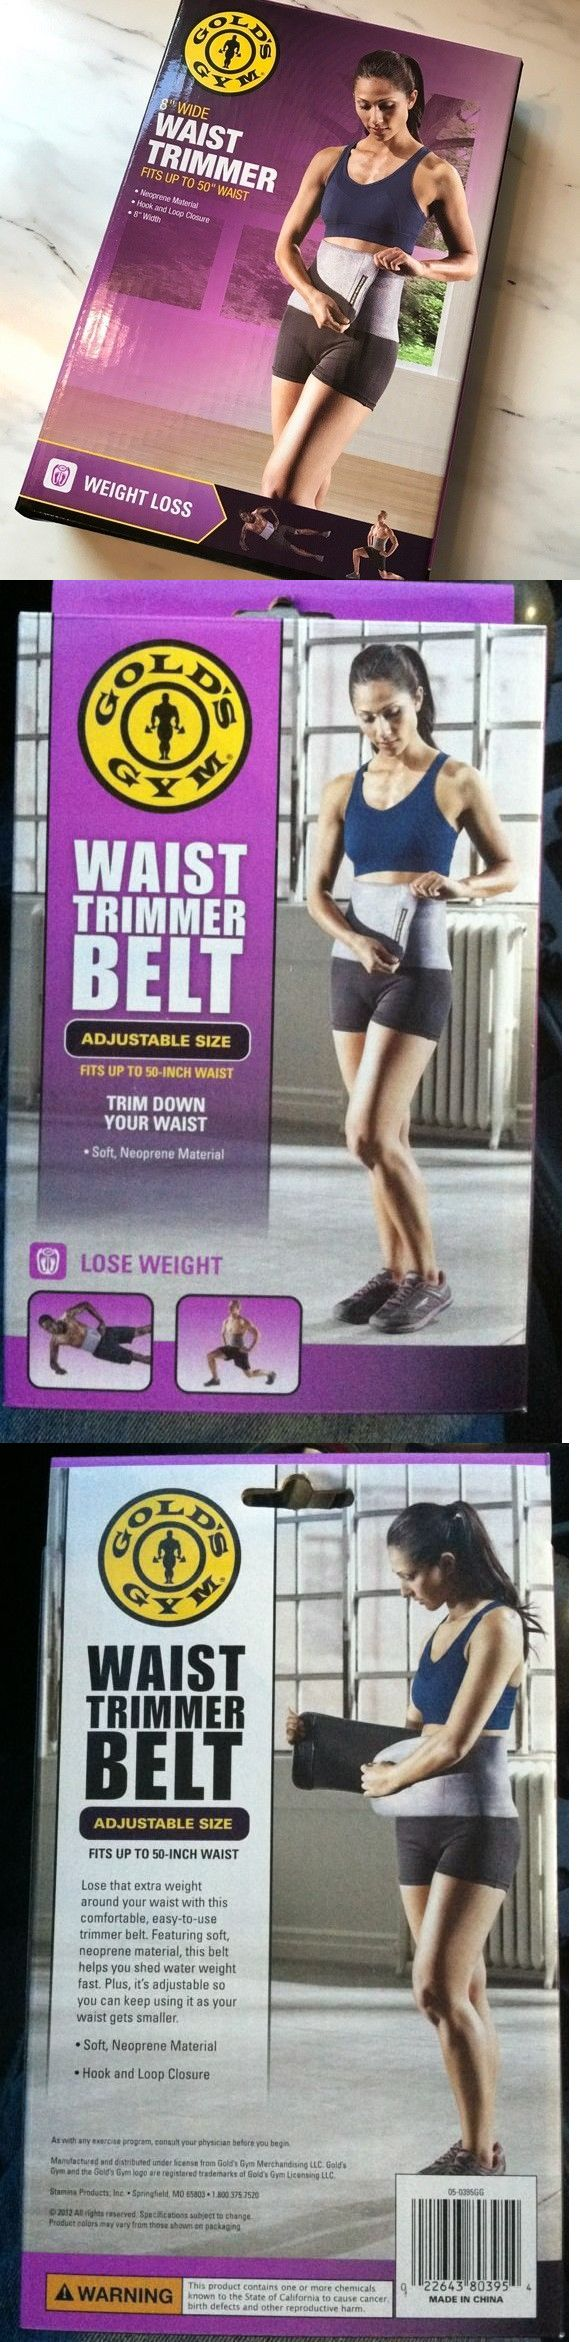 a014449ee72 Other Weight Management 11781  New Gold S Gym Waist Trimmer Belt Reduce  Belly Fat Quickly Nib Weight Loss -  BUY IT NOW ONLY   11.3 on eBay!